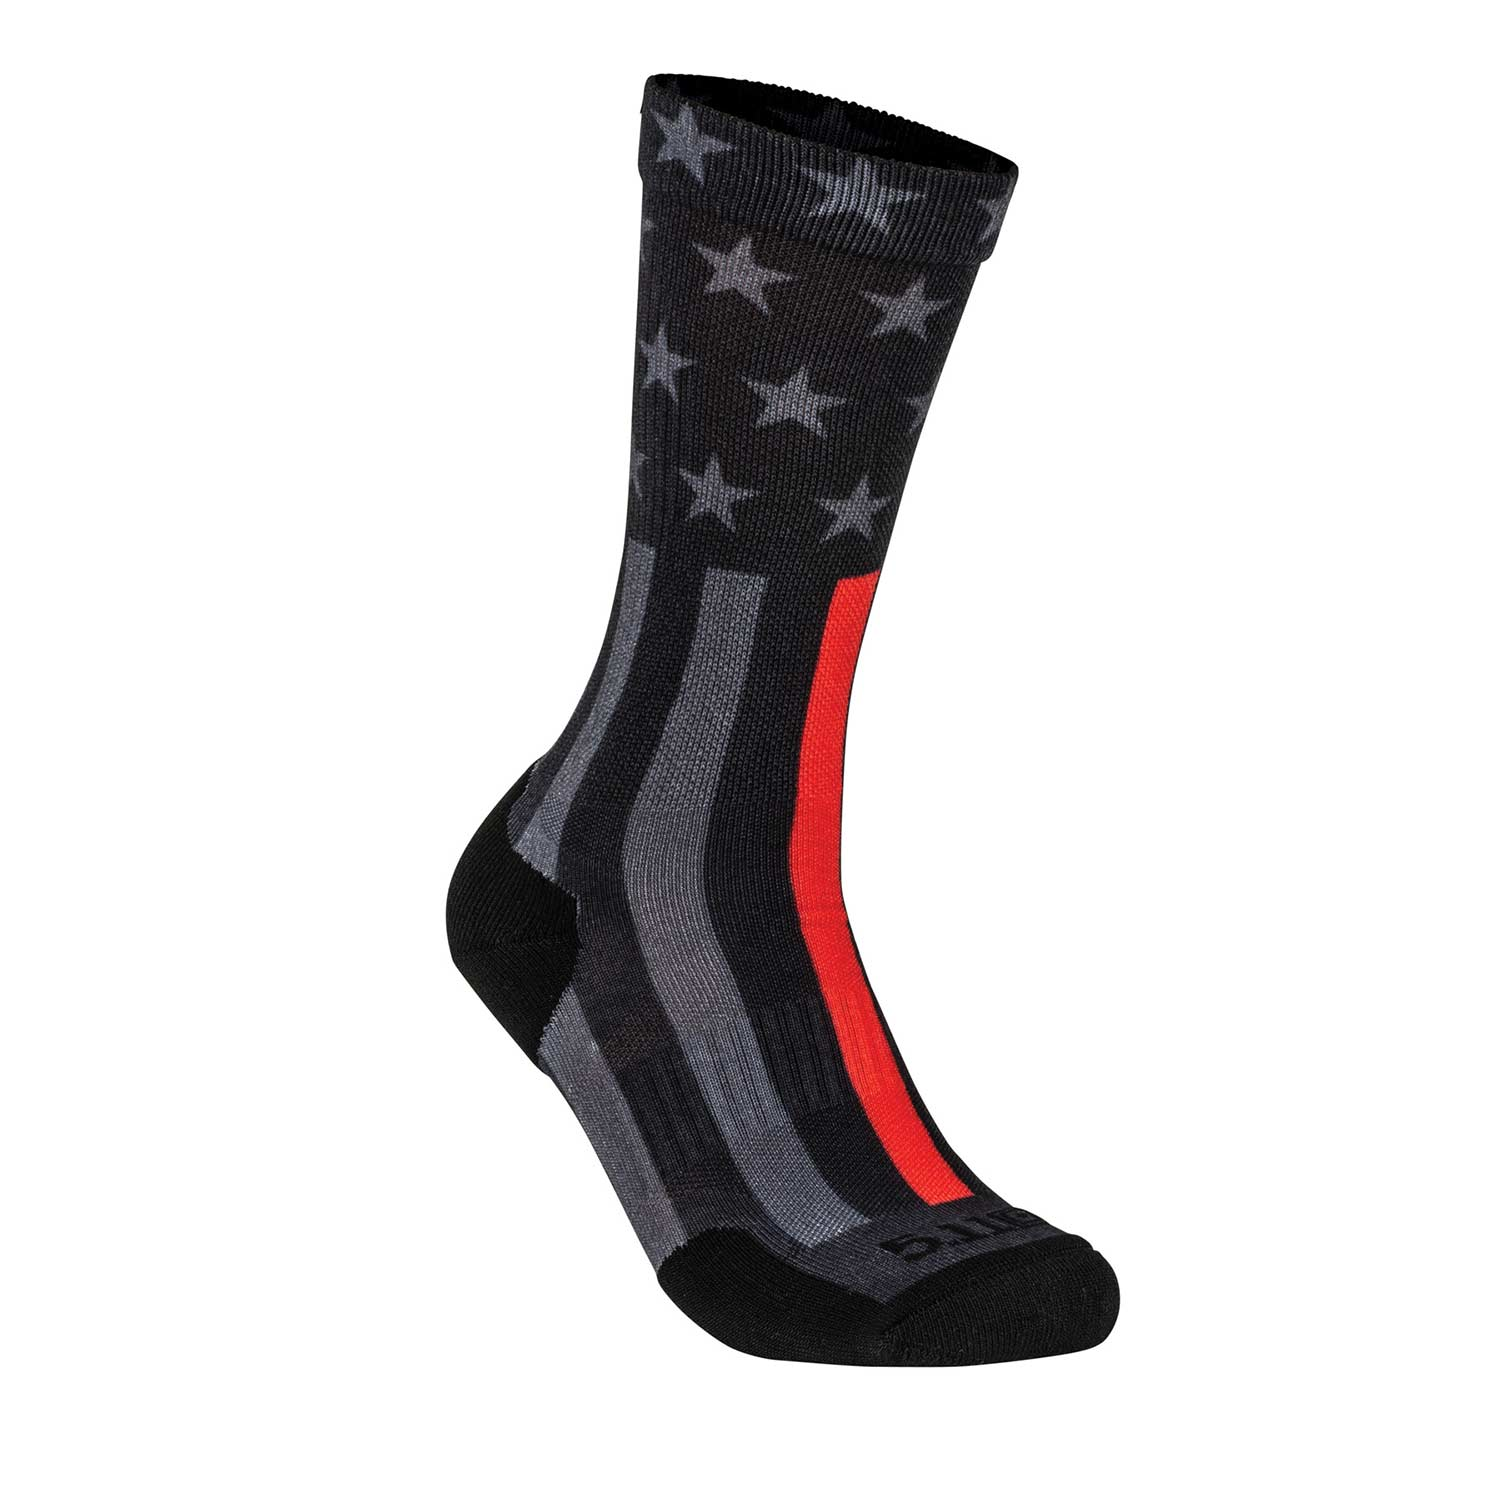 5.11 Sock and Awe Thin Red Line Crew Sock